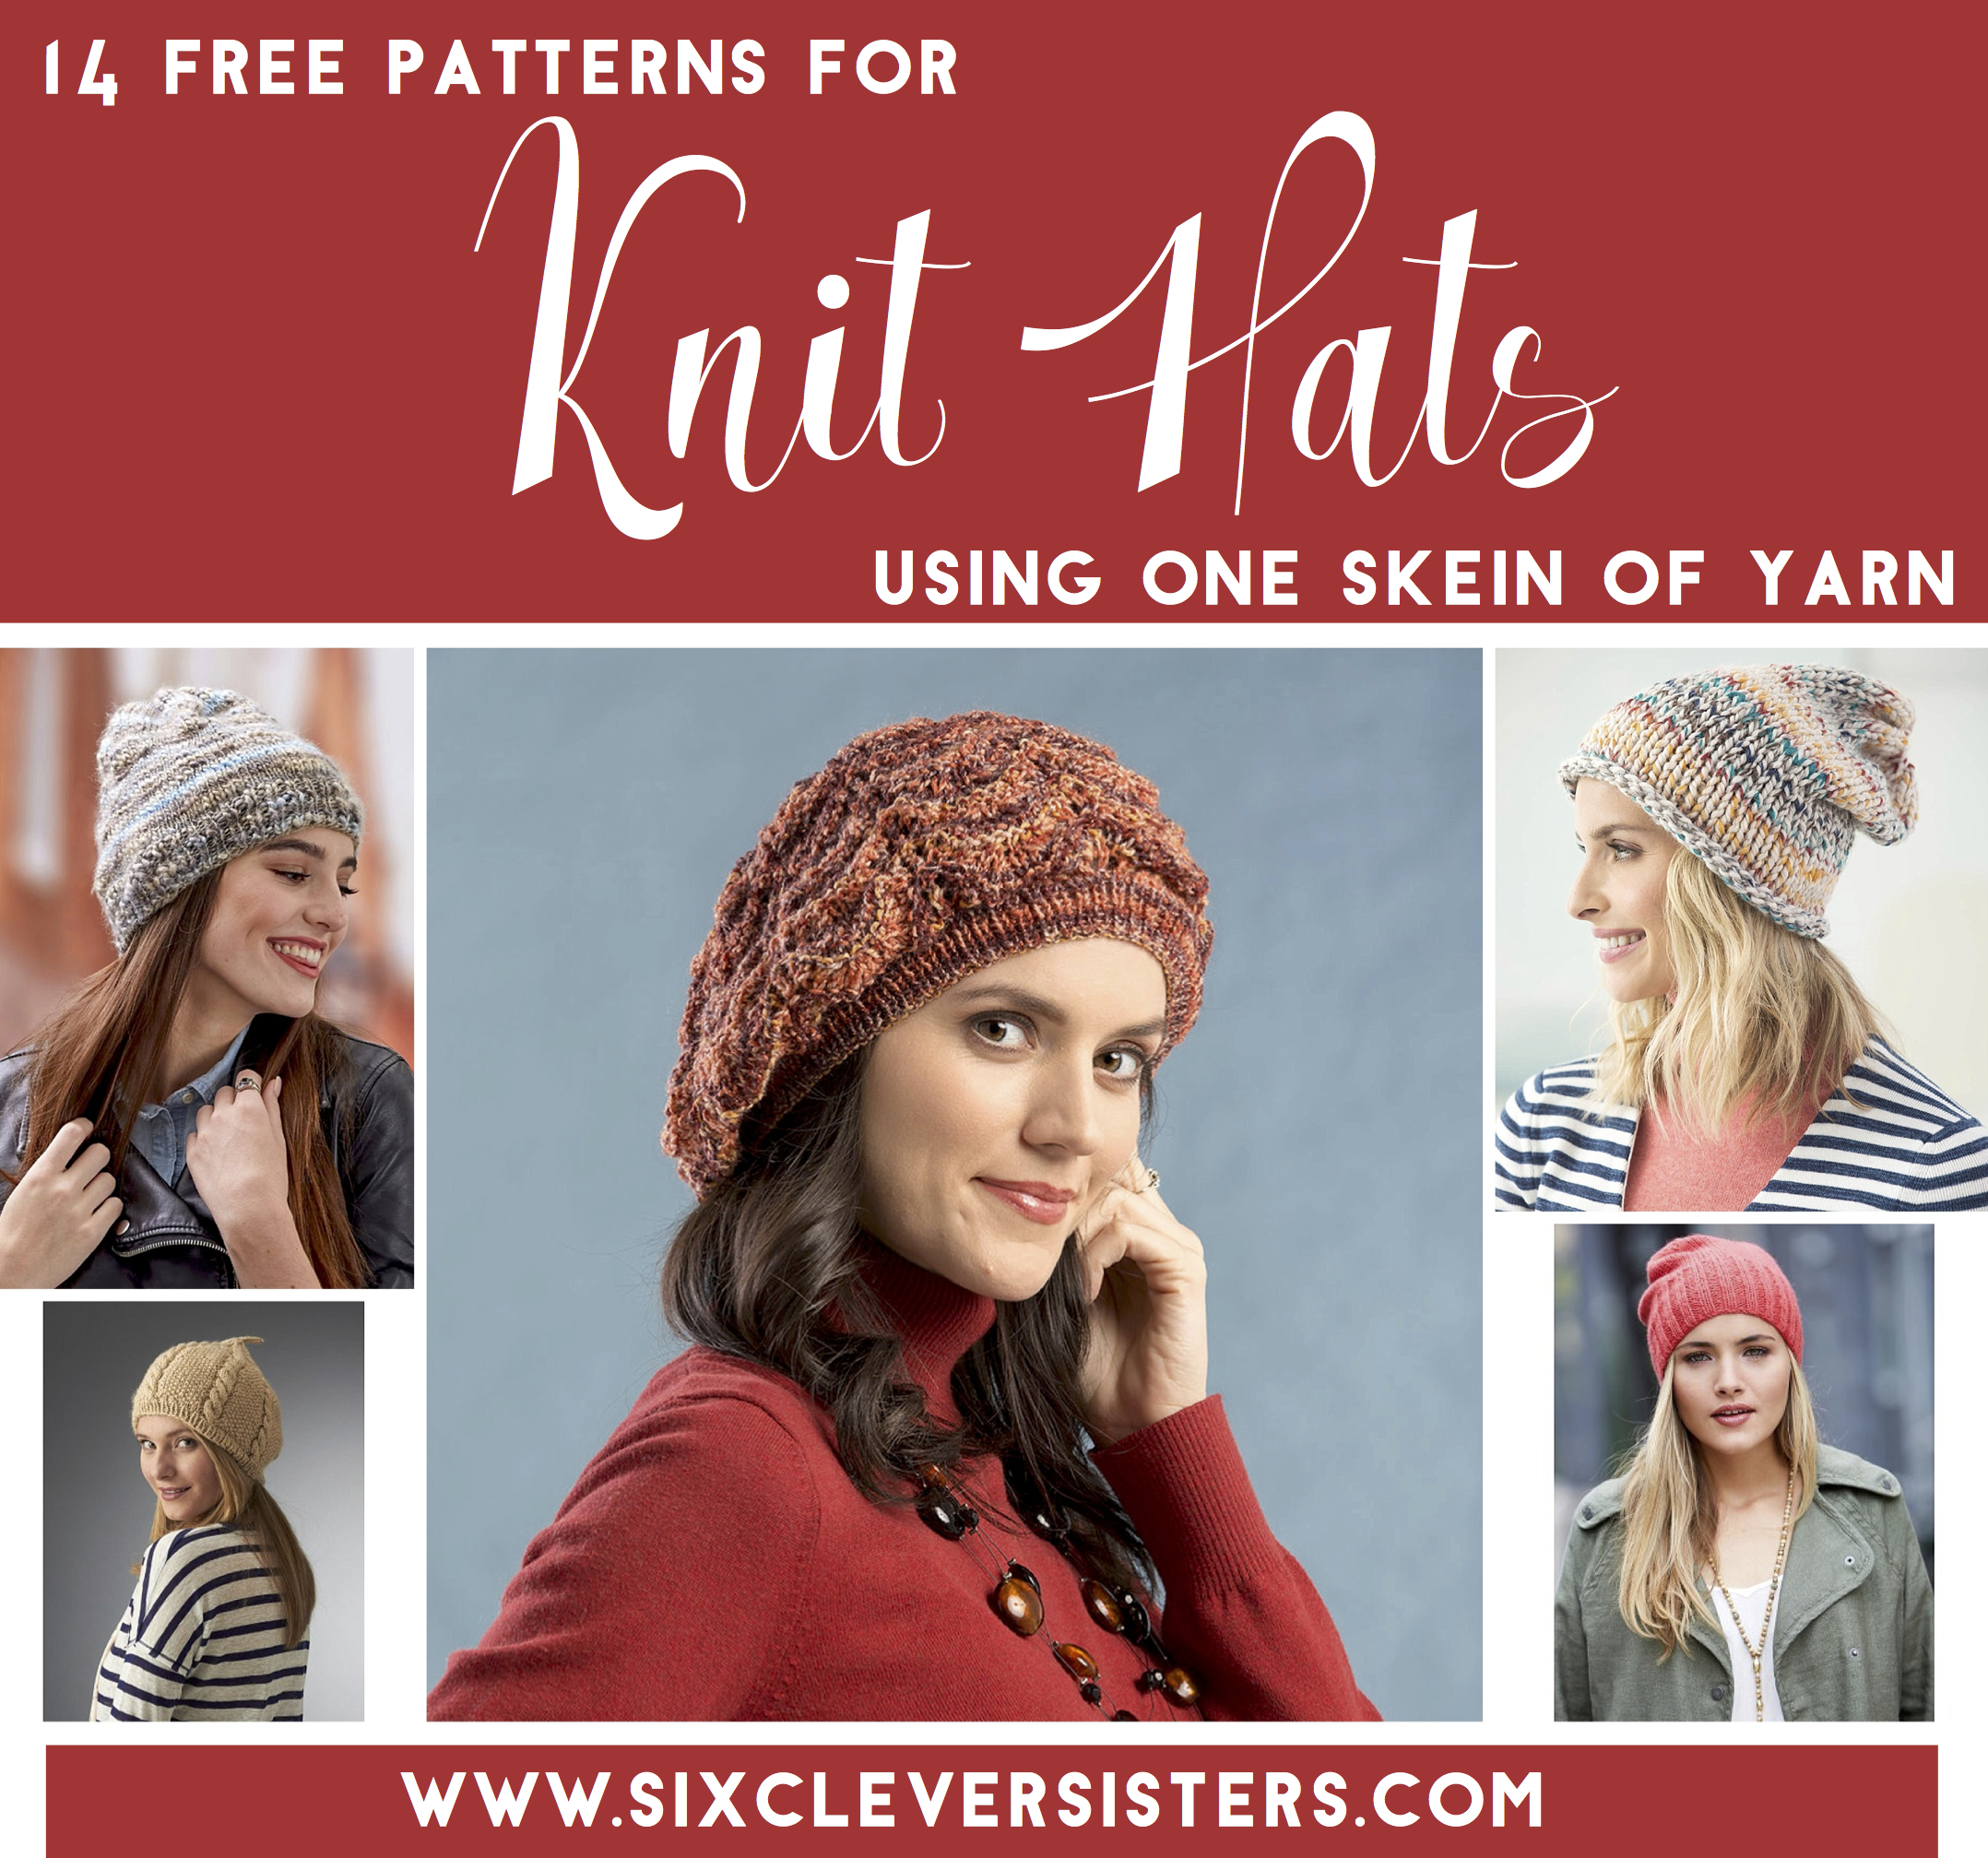 14 Free Patterns For Knit Hats Using Just One Skein Of Yarn